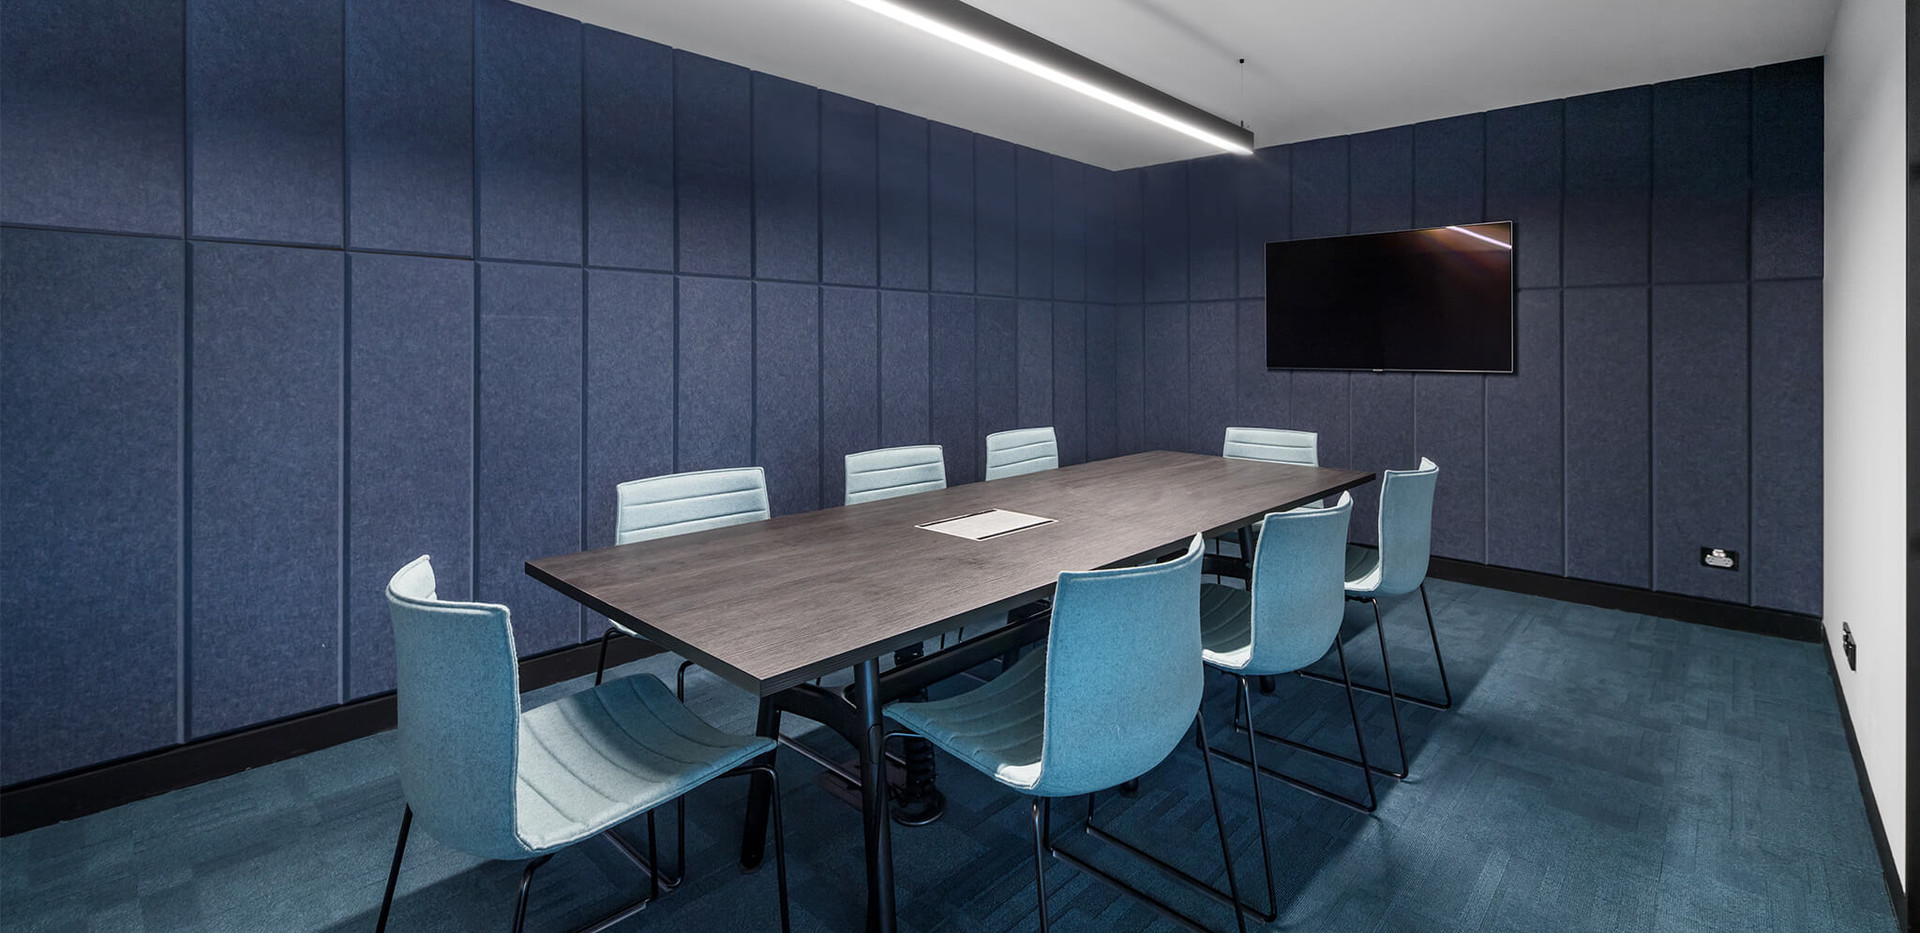 Southern Cross Austereo Podcast - Southern Cross Austereo - corporate design interiors